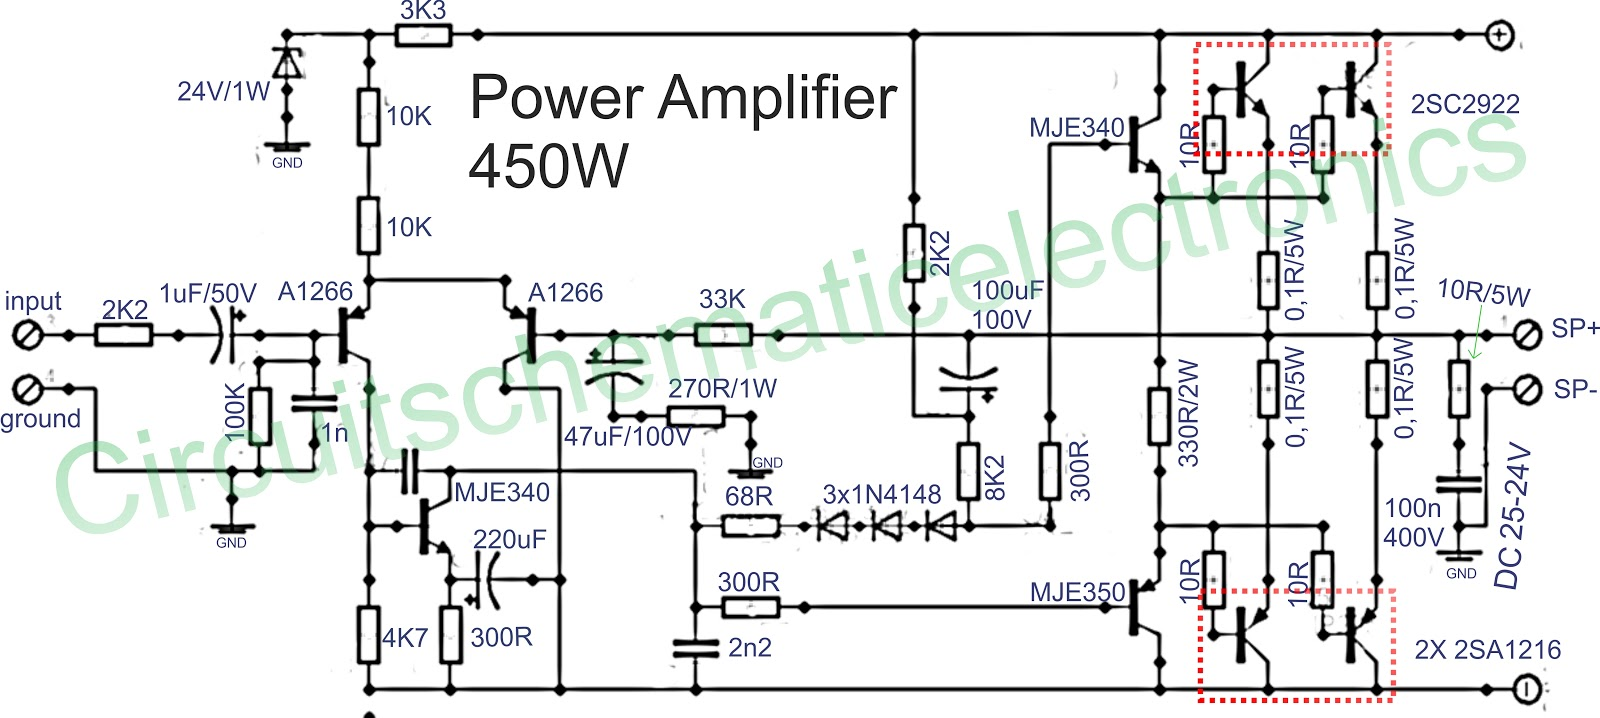 High+Power+amplifier+450+Watt+with+2+set+sanken power amplifier 450w with sanken electronic circuit amp power step wiring diagram at gsmx.co